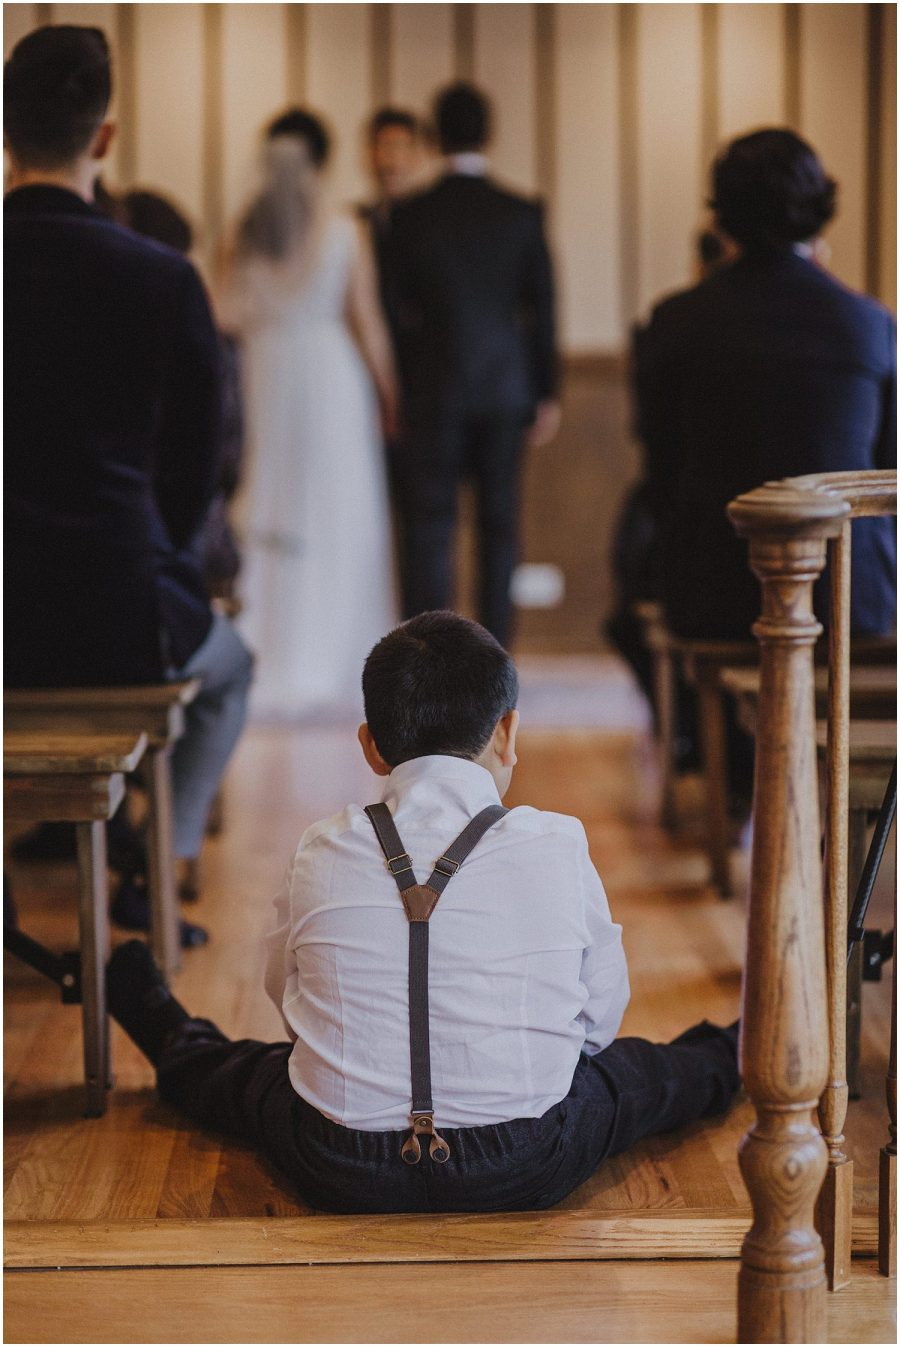 young child watching a wedding ceremony Chicago wedding photographer kyle szeto